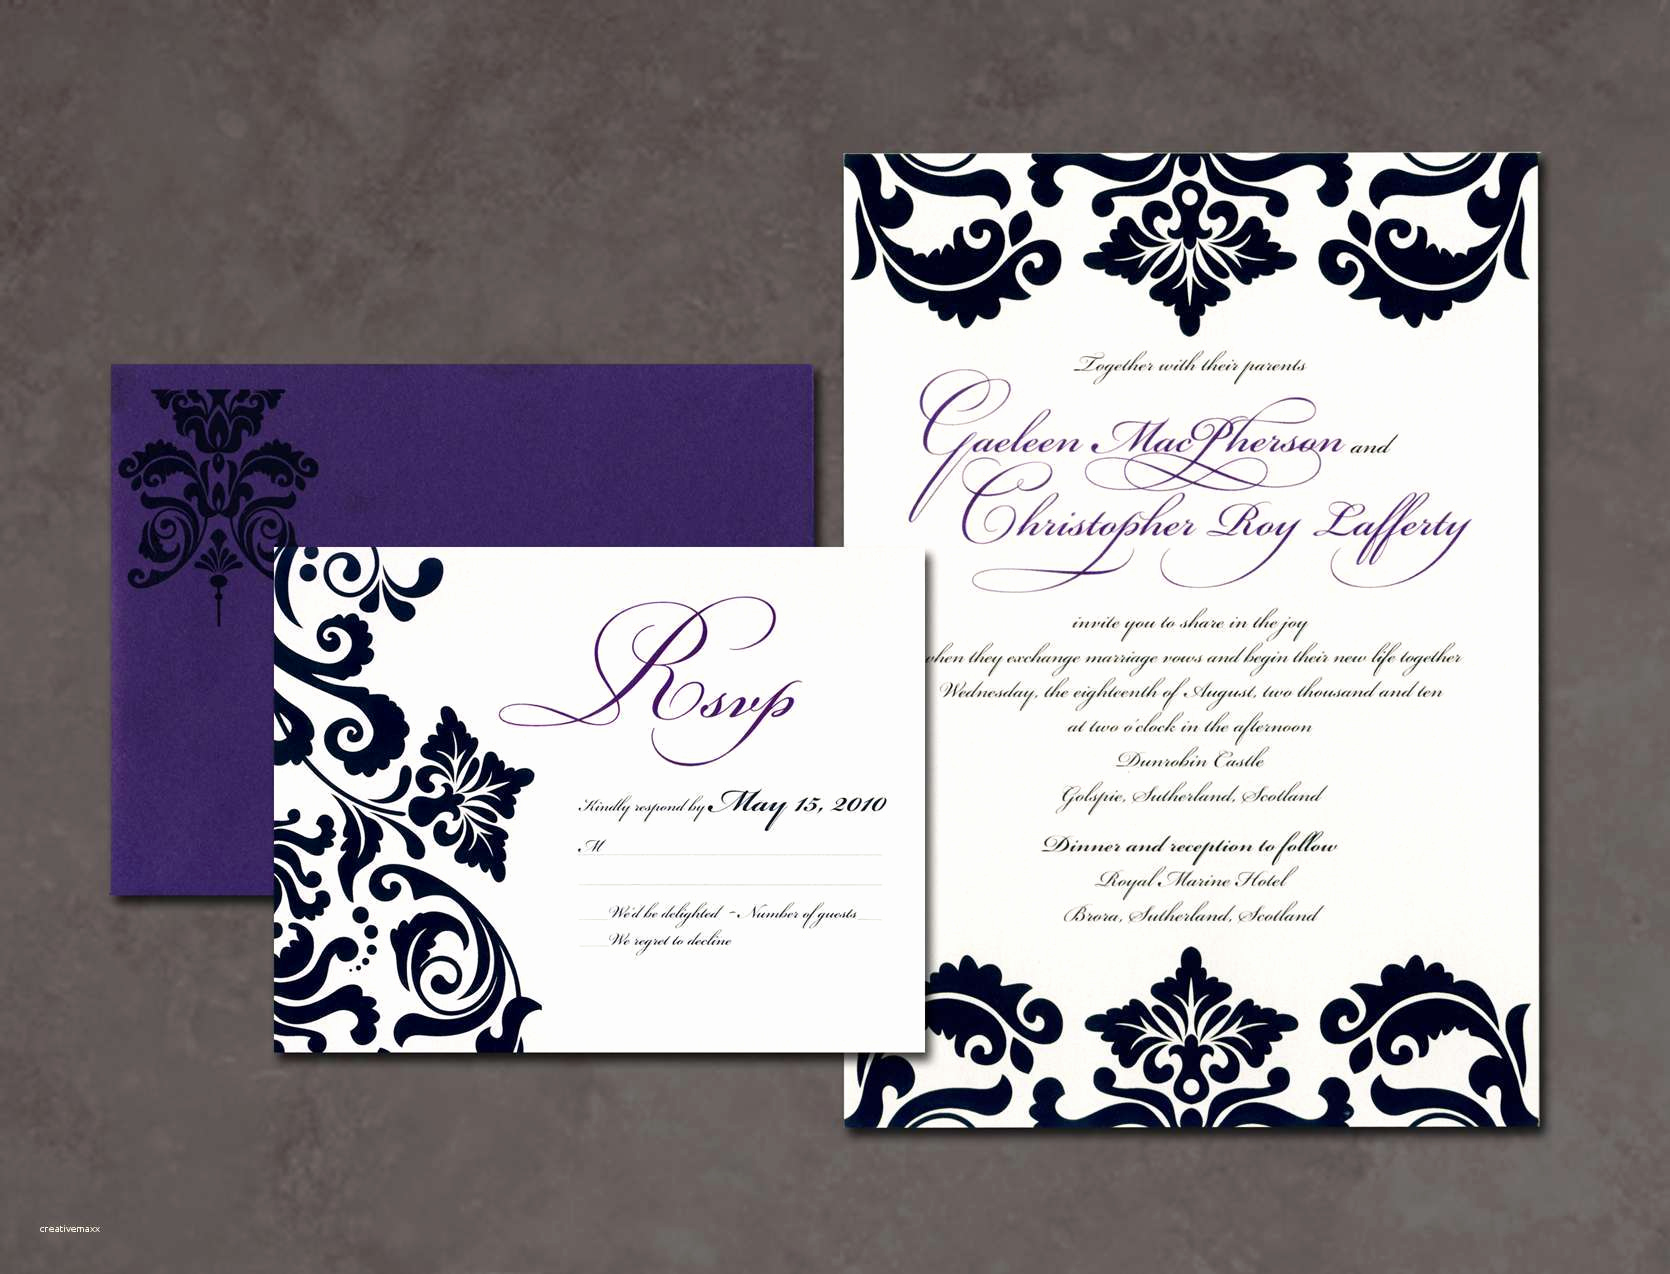 Wedding Invitation Templates Word Awesome Luxury Blank Wedding Invitation Templates for Microsoft